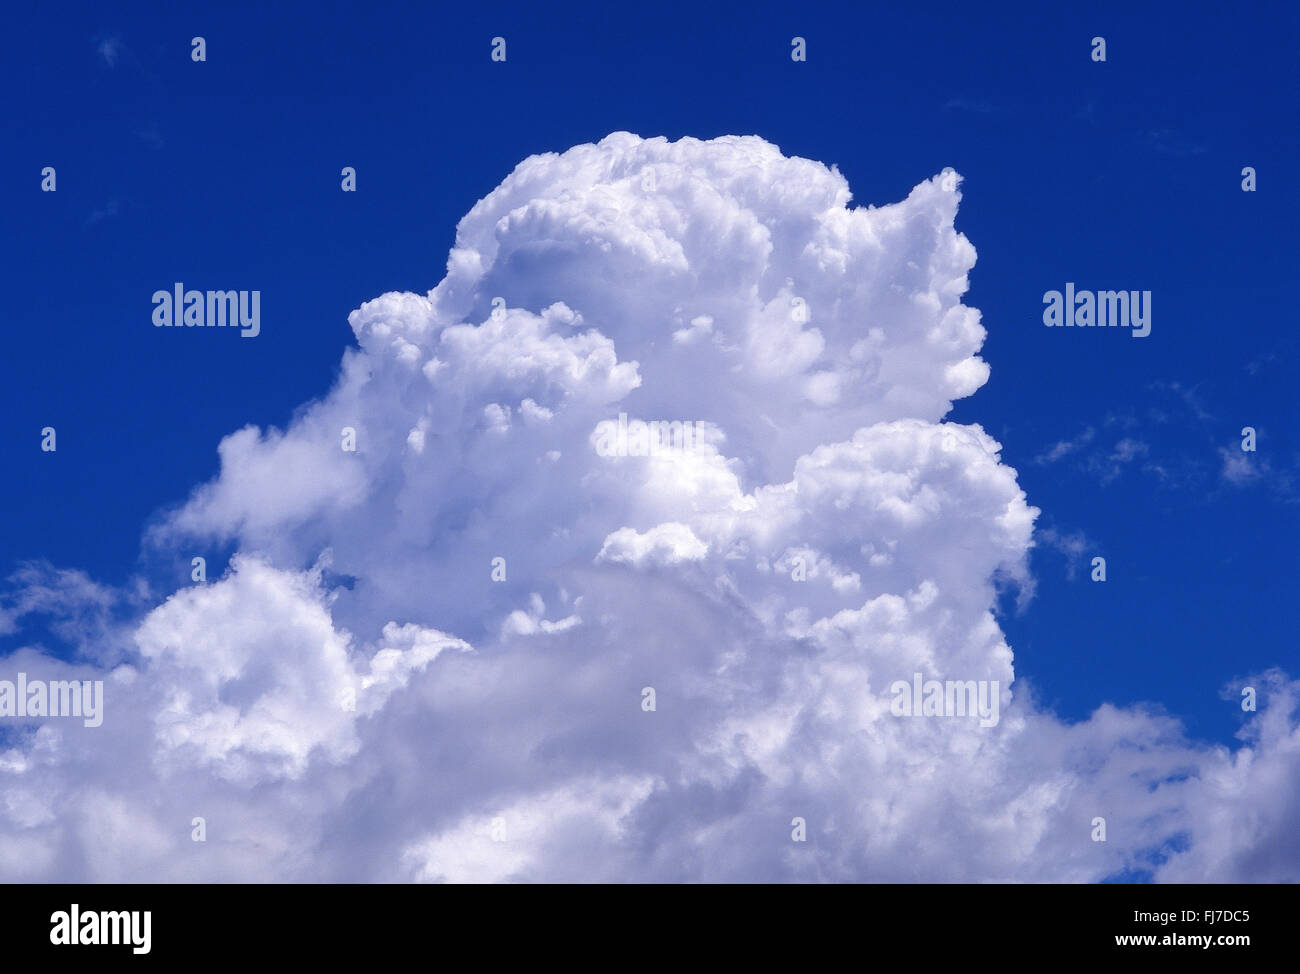 White cumulus clouds and blue sky, Berkshire, England, United Kingdom - Stock Image